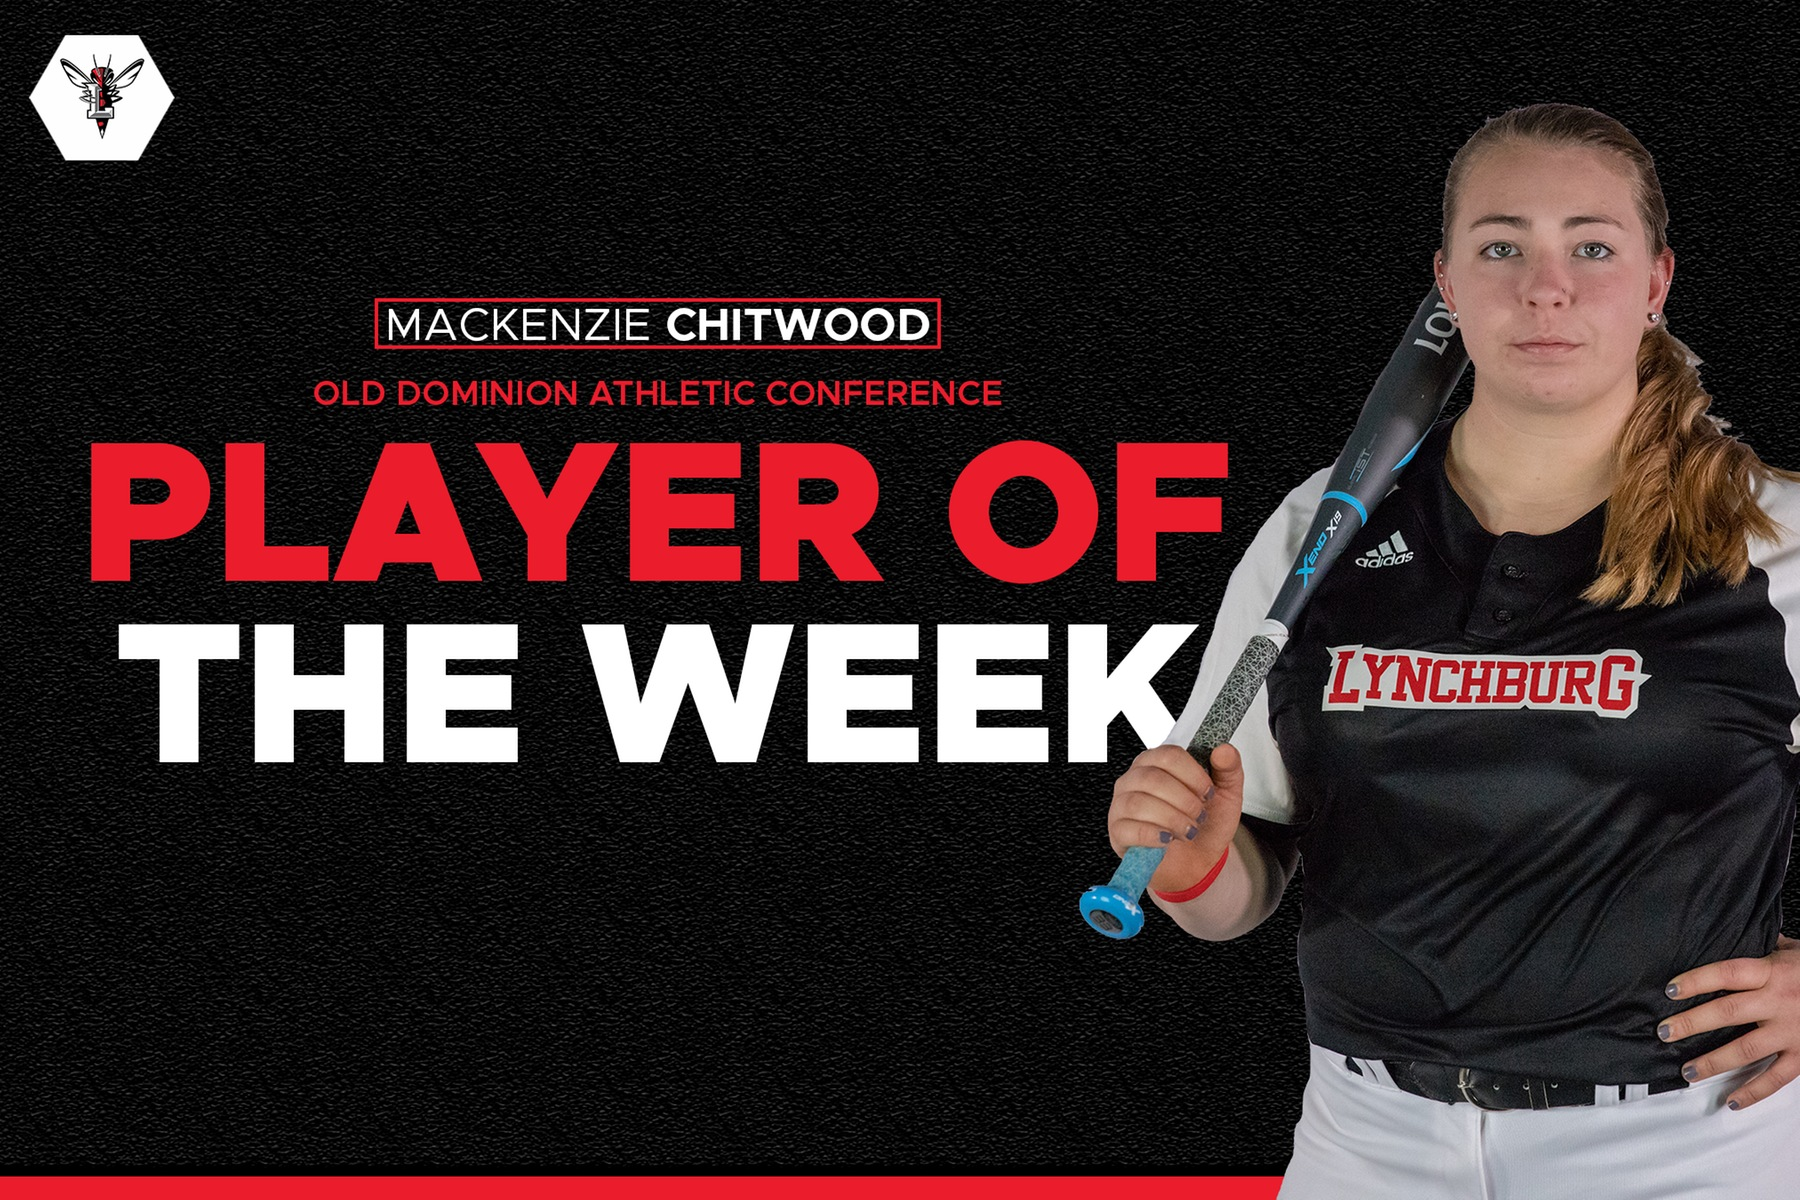 Mackenzie Chitwood ODAC player of the week graphic